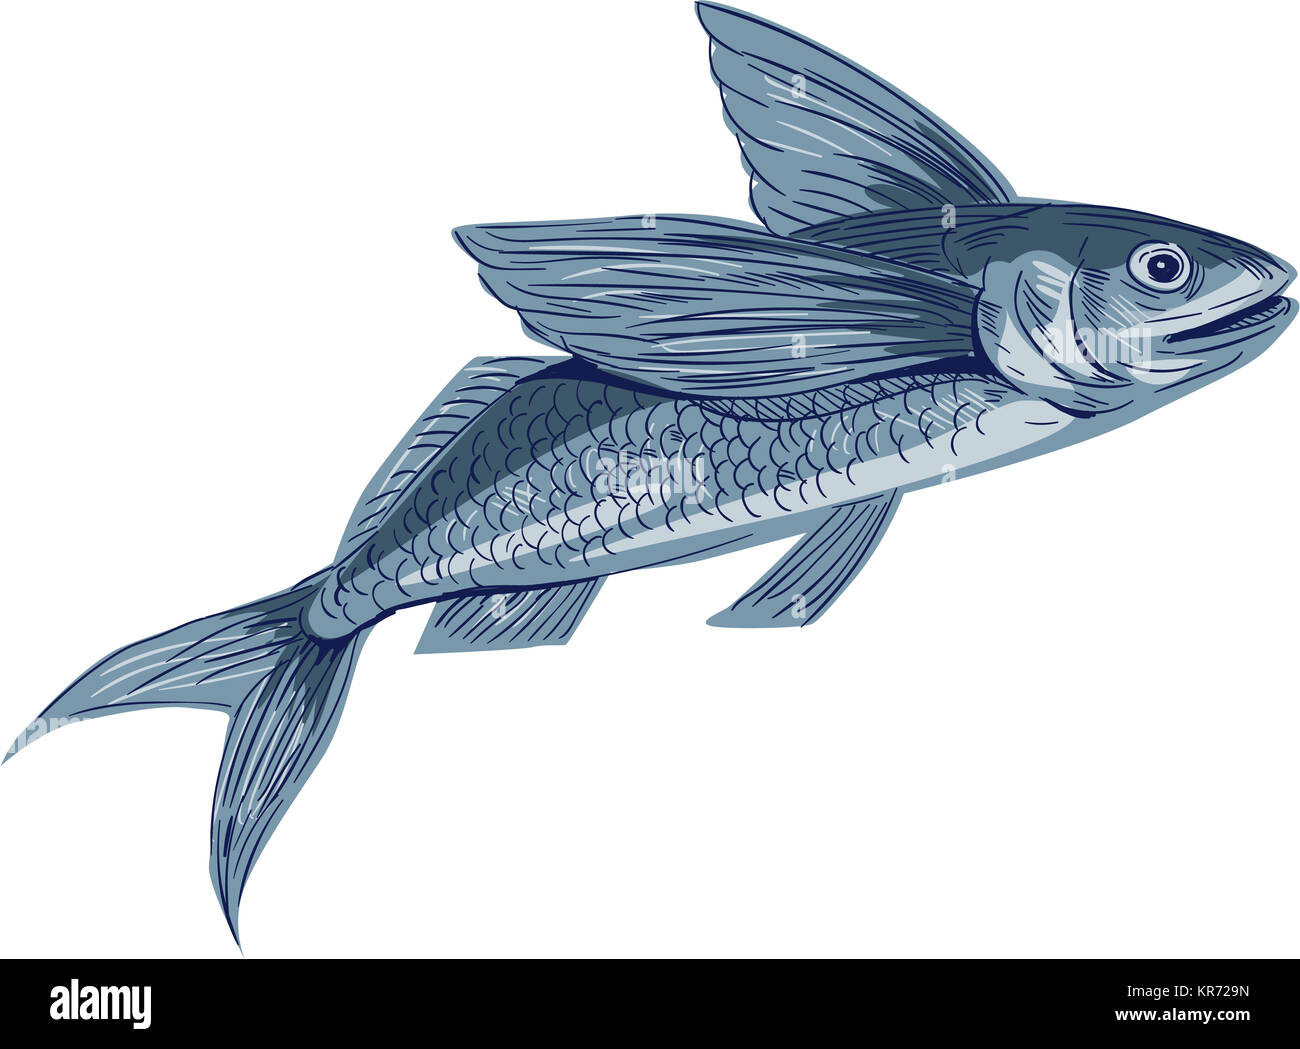 Exocoetidae stock photos exocoetidae stock images alamy for Flying fish drawing